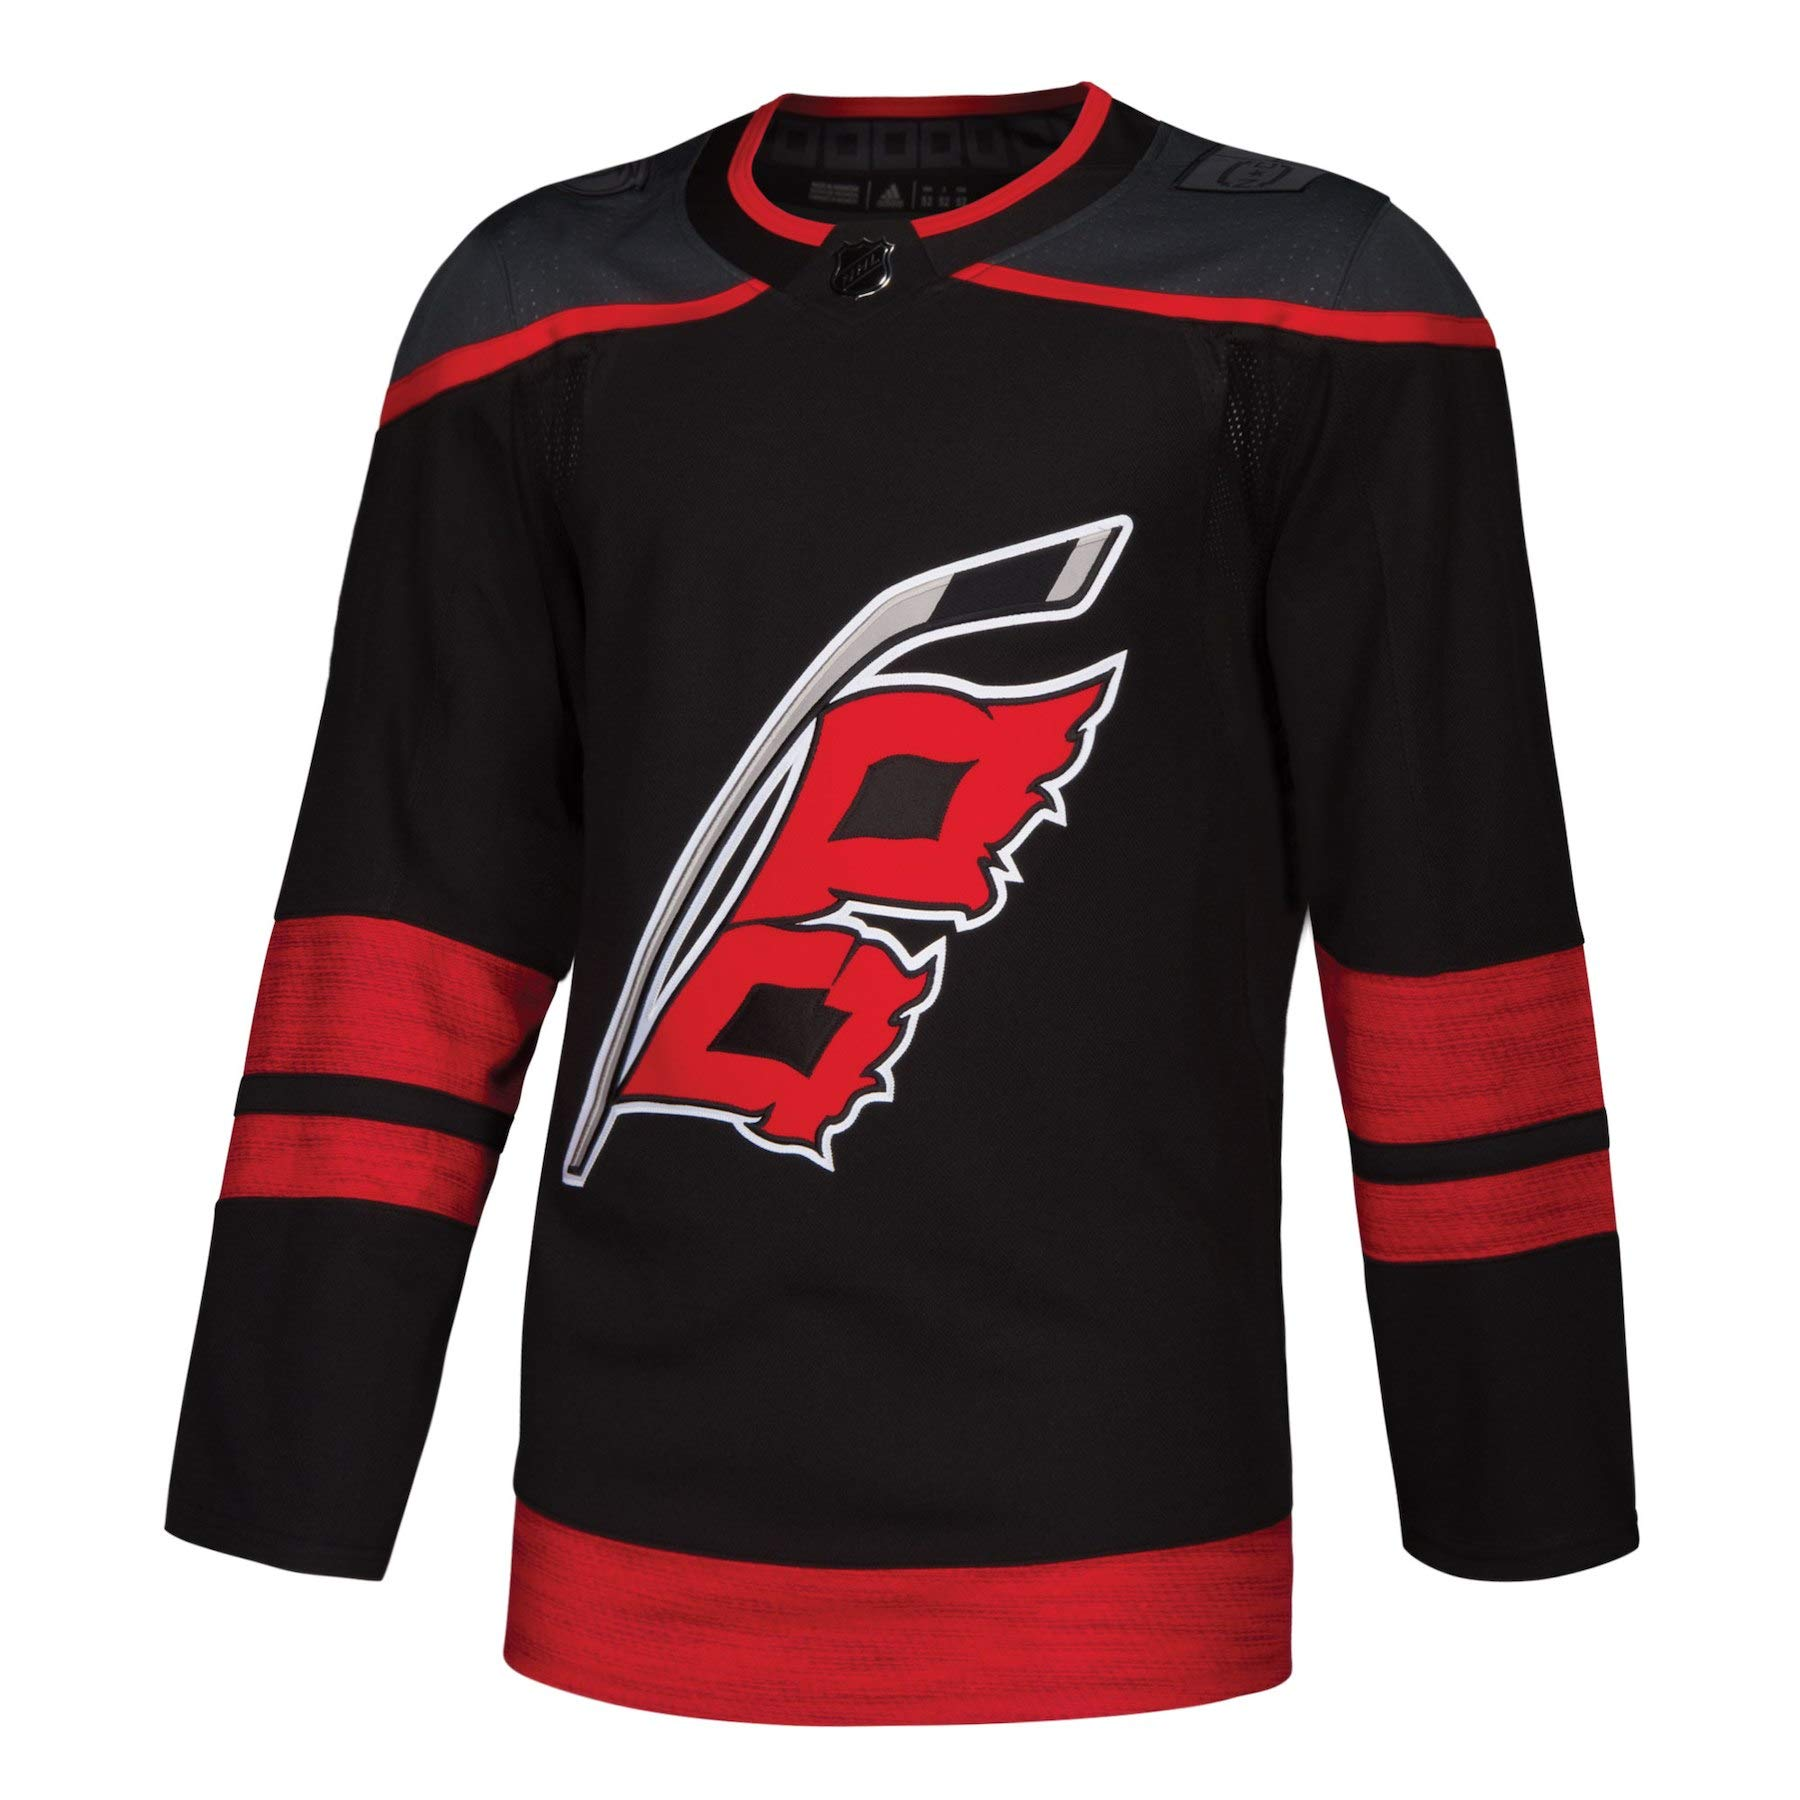 adidas Carolina Hurricanes Alternate Black NHL Men's Climalite Authentic Team Hockey Jersey (46/S)